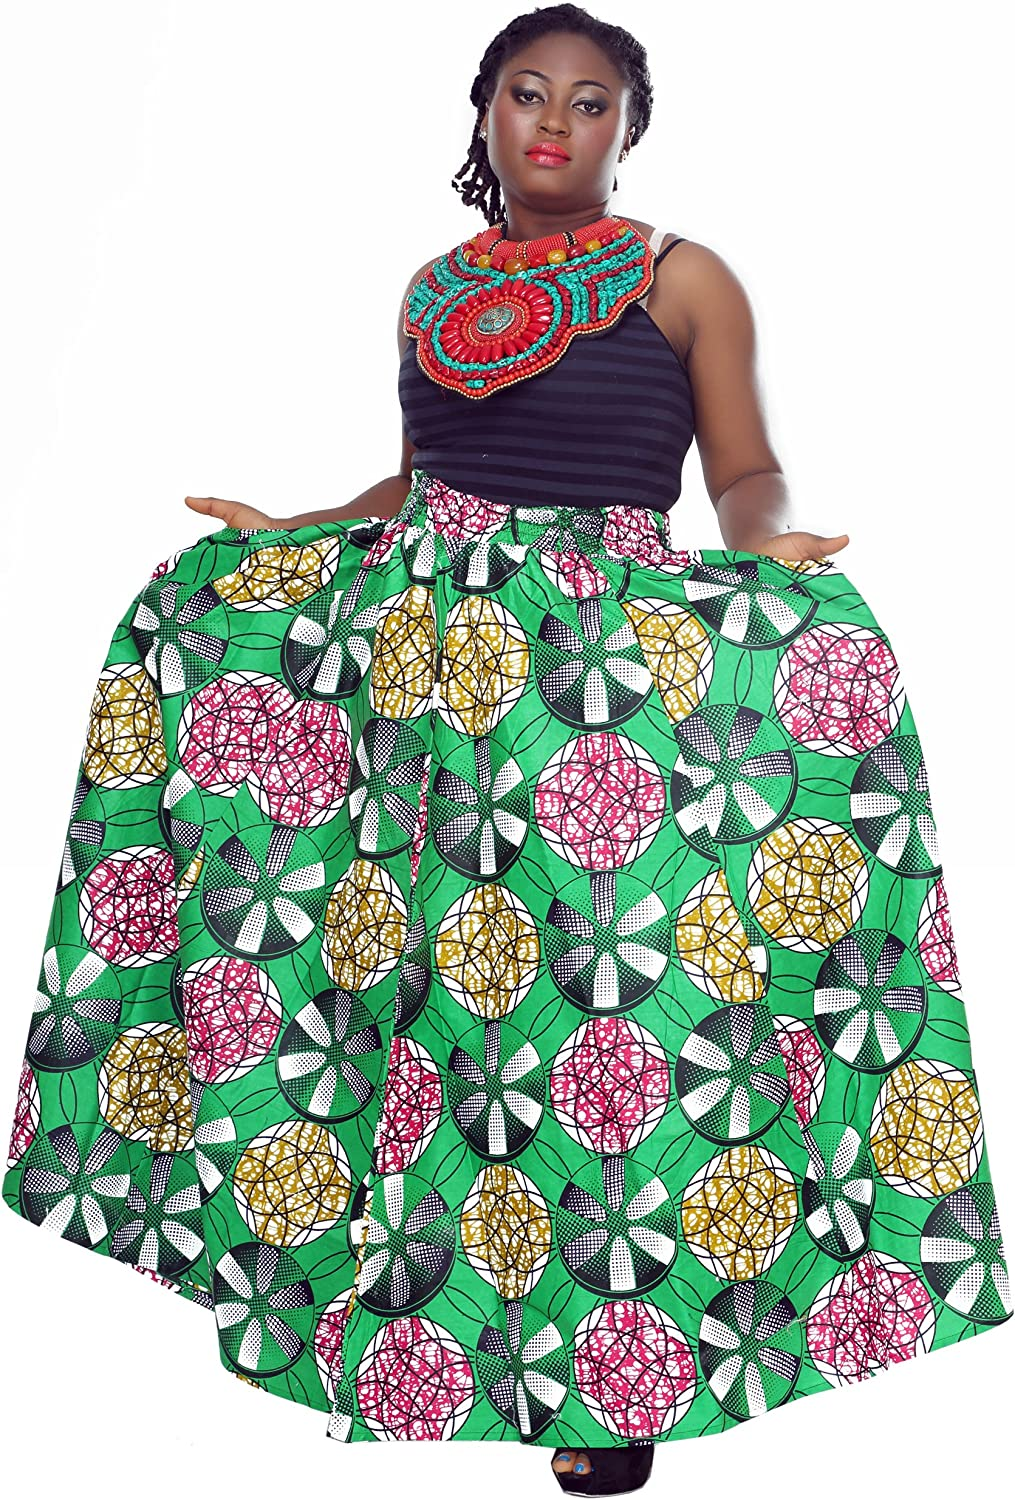 African Planet Women's Trees Wax Skirt Celestial Inspired Elastic Printed Waist Maxi